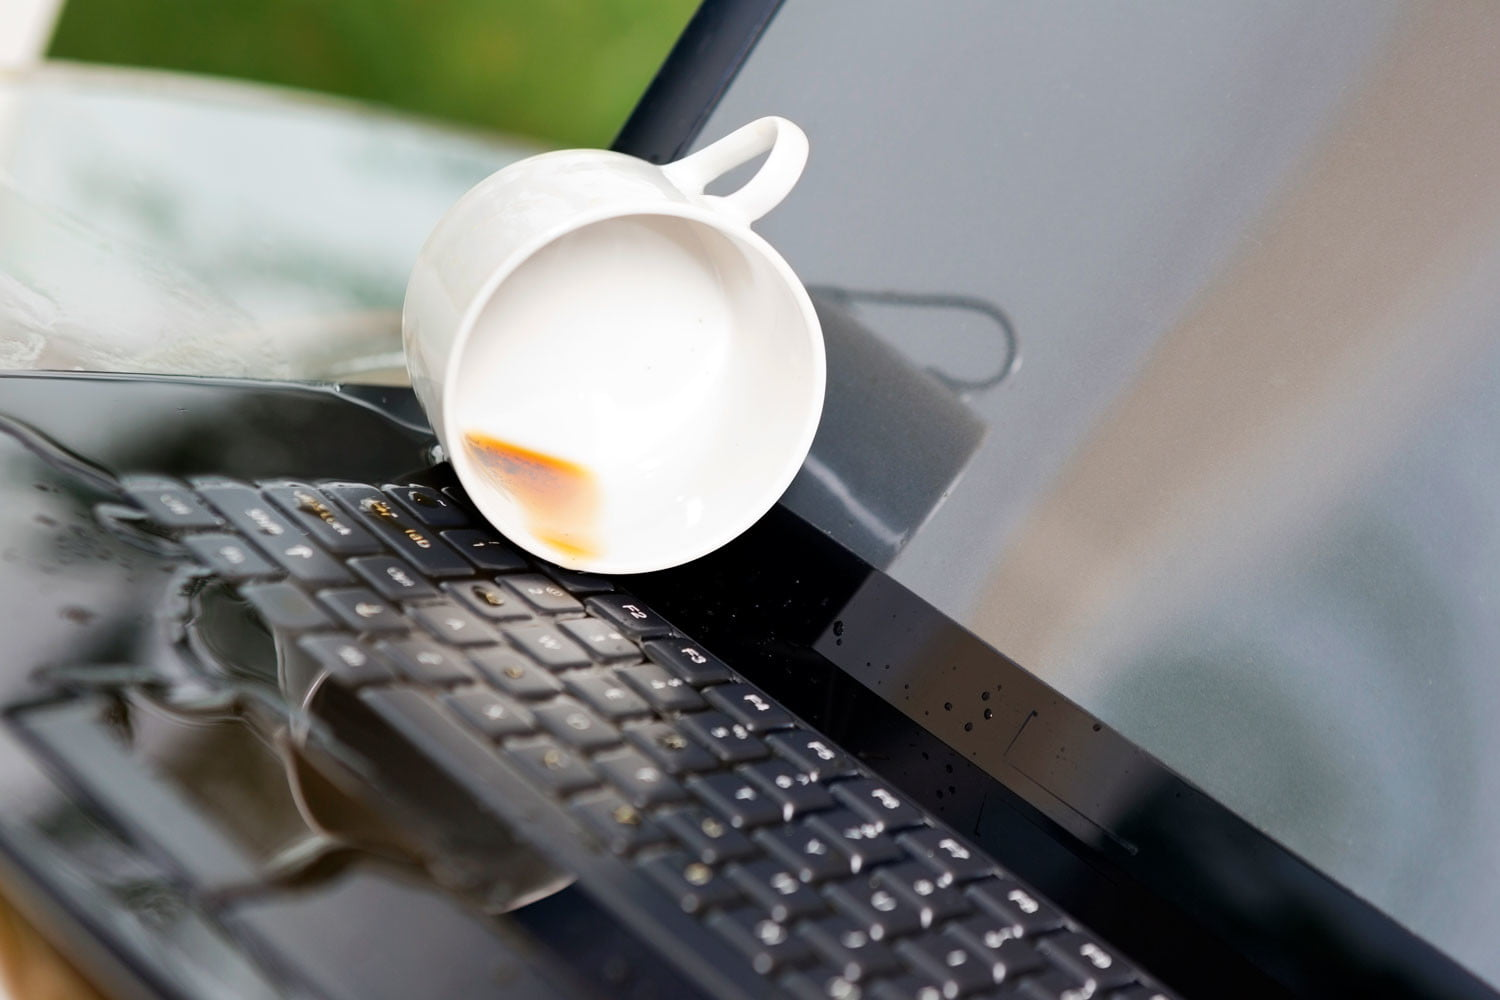 How to Save a Laptop from Liquid Damage How to Save a Laptop from Liquid Damage new photo